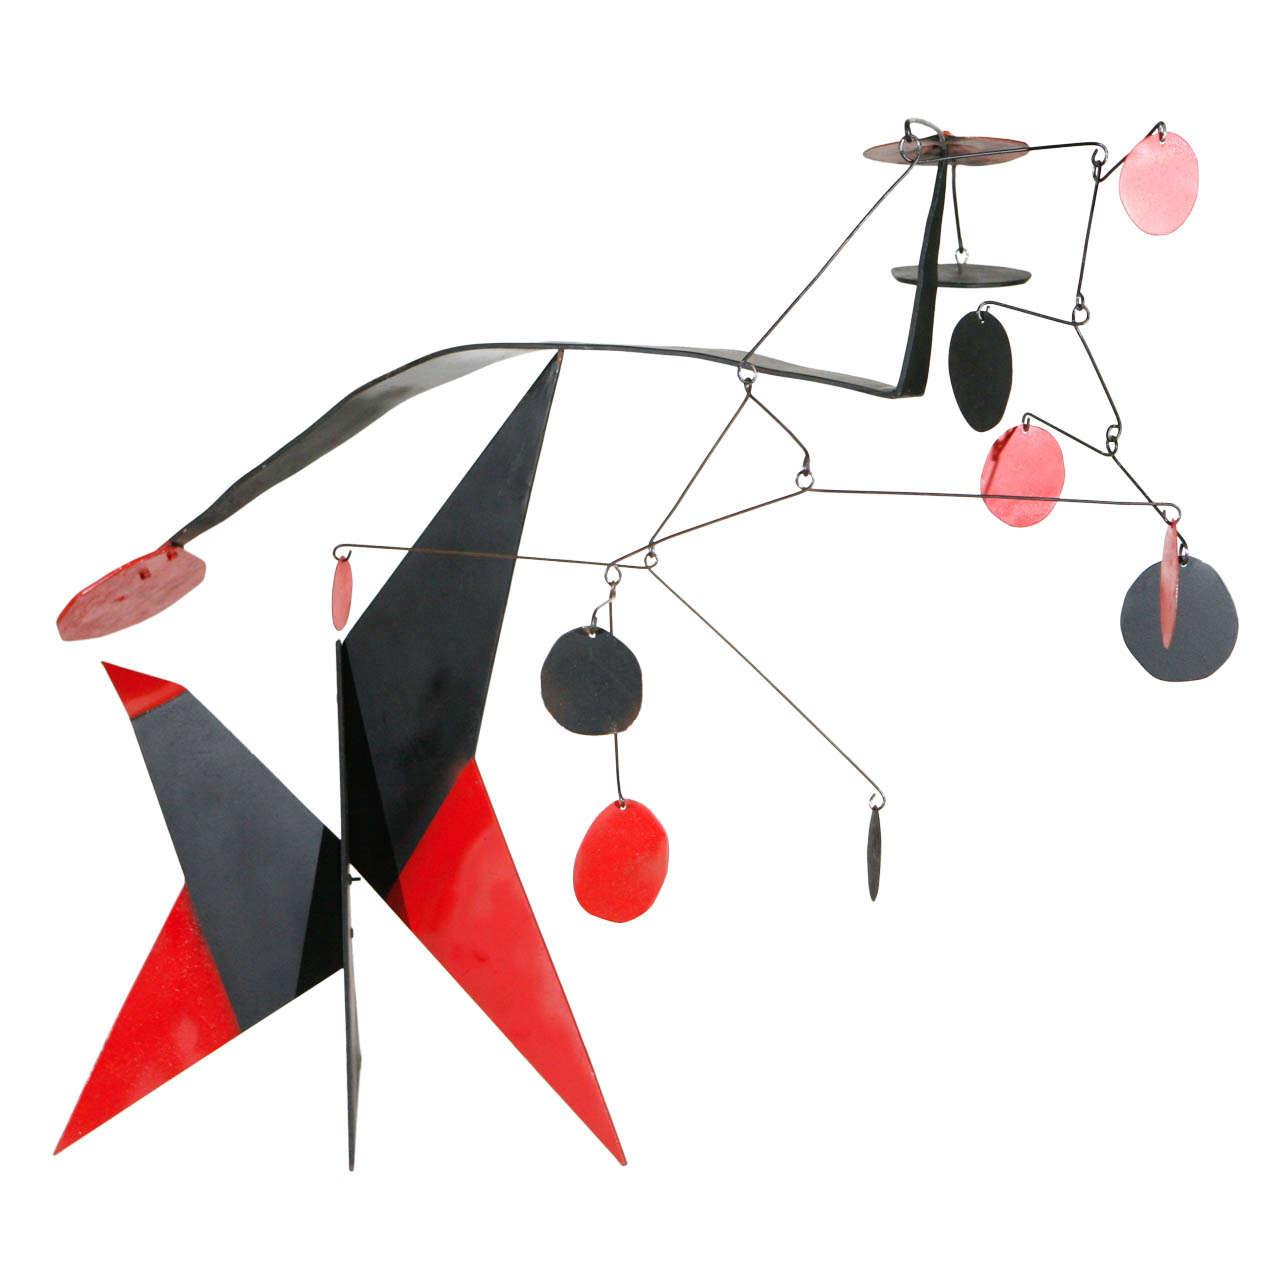 French Painted Steel Mobile Sculpture